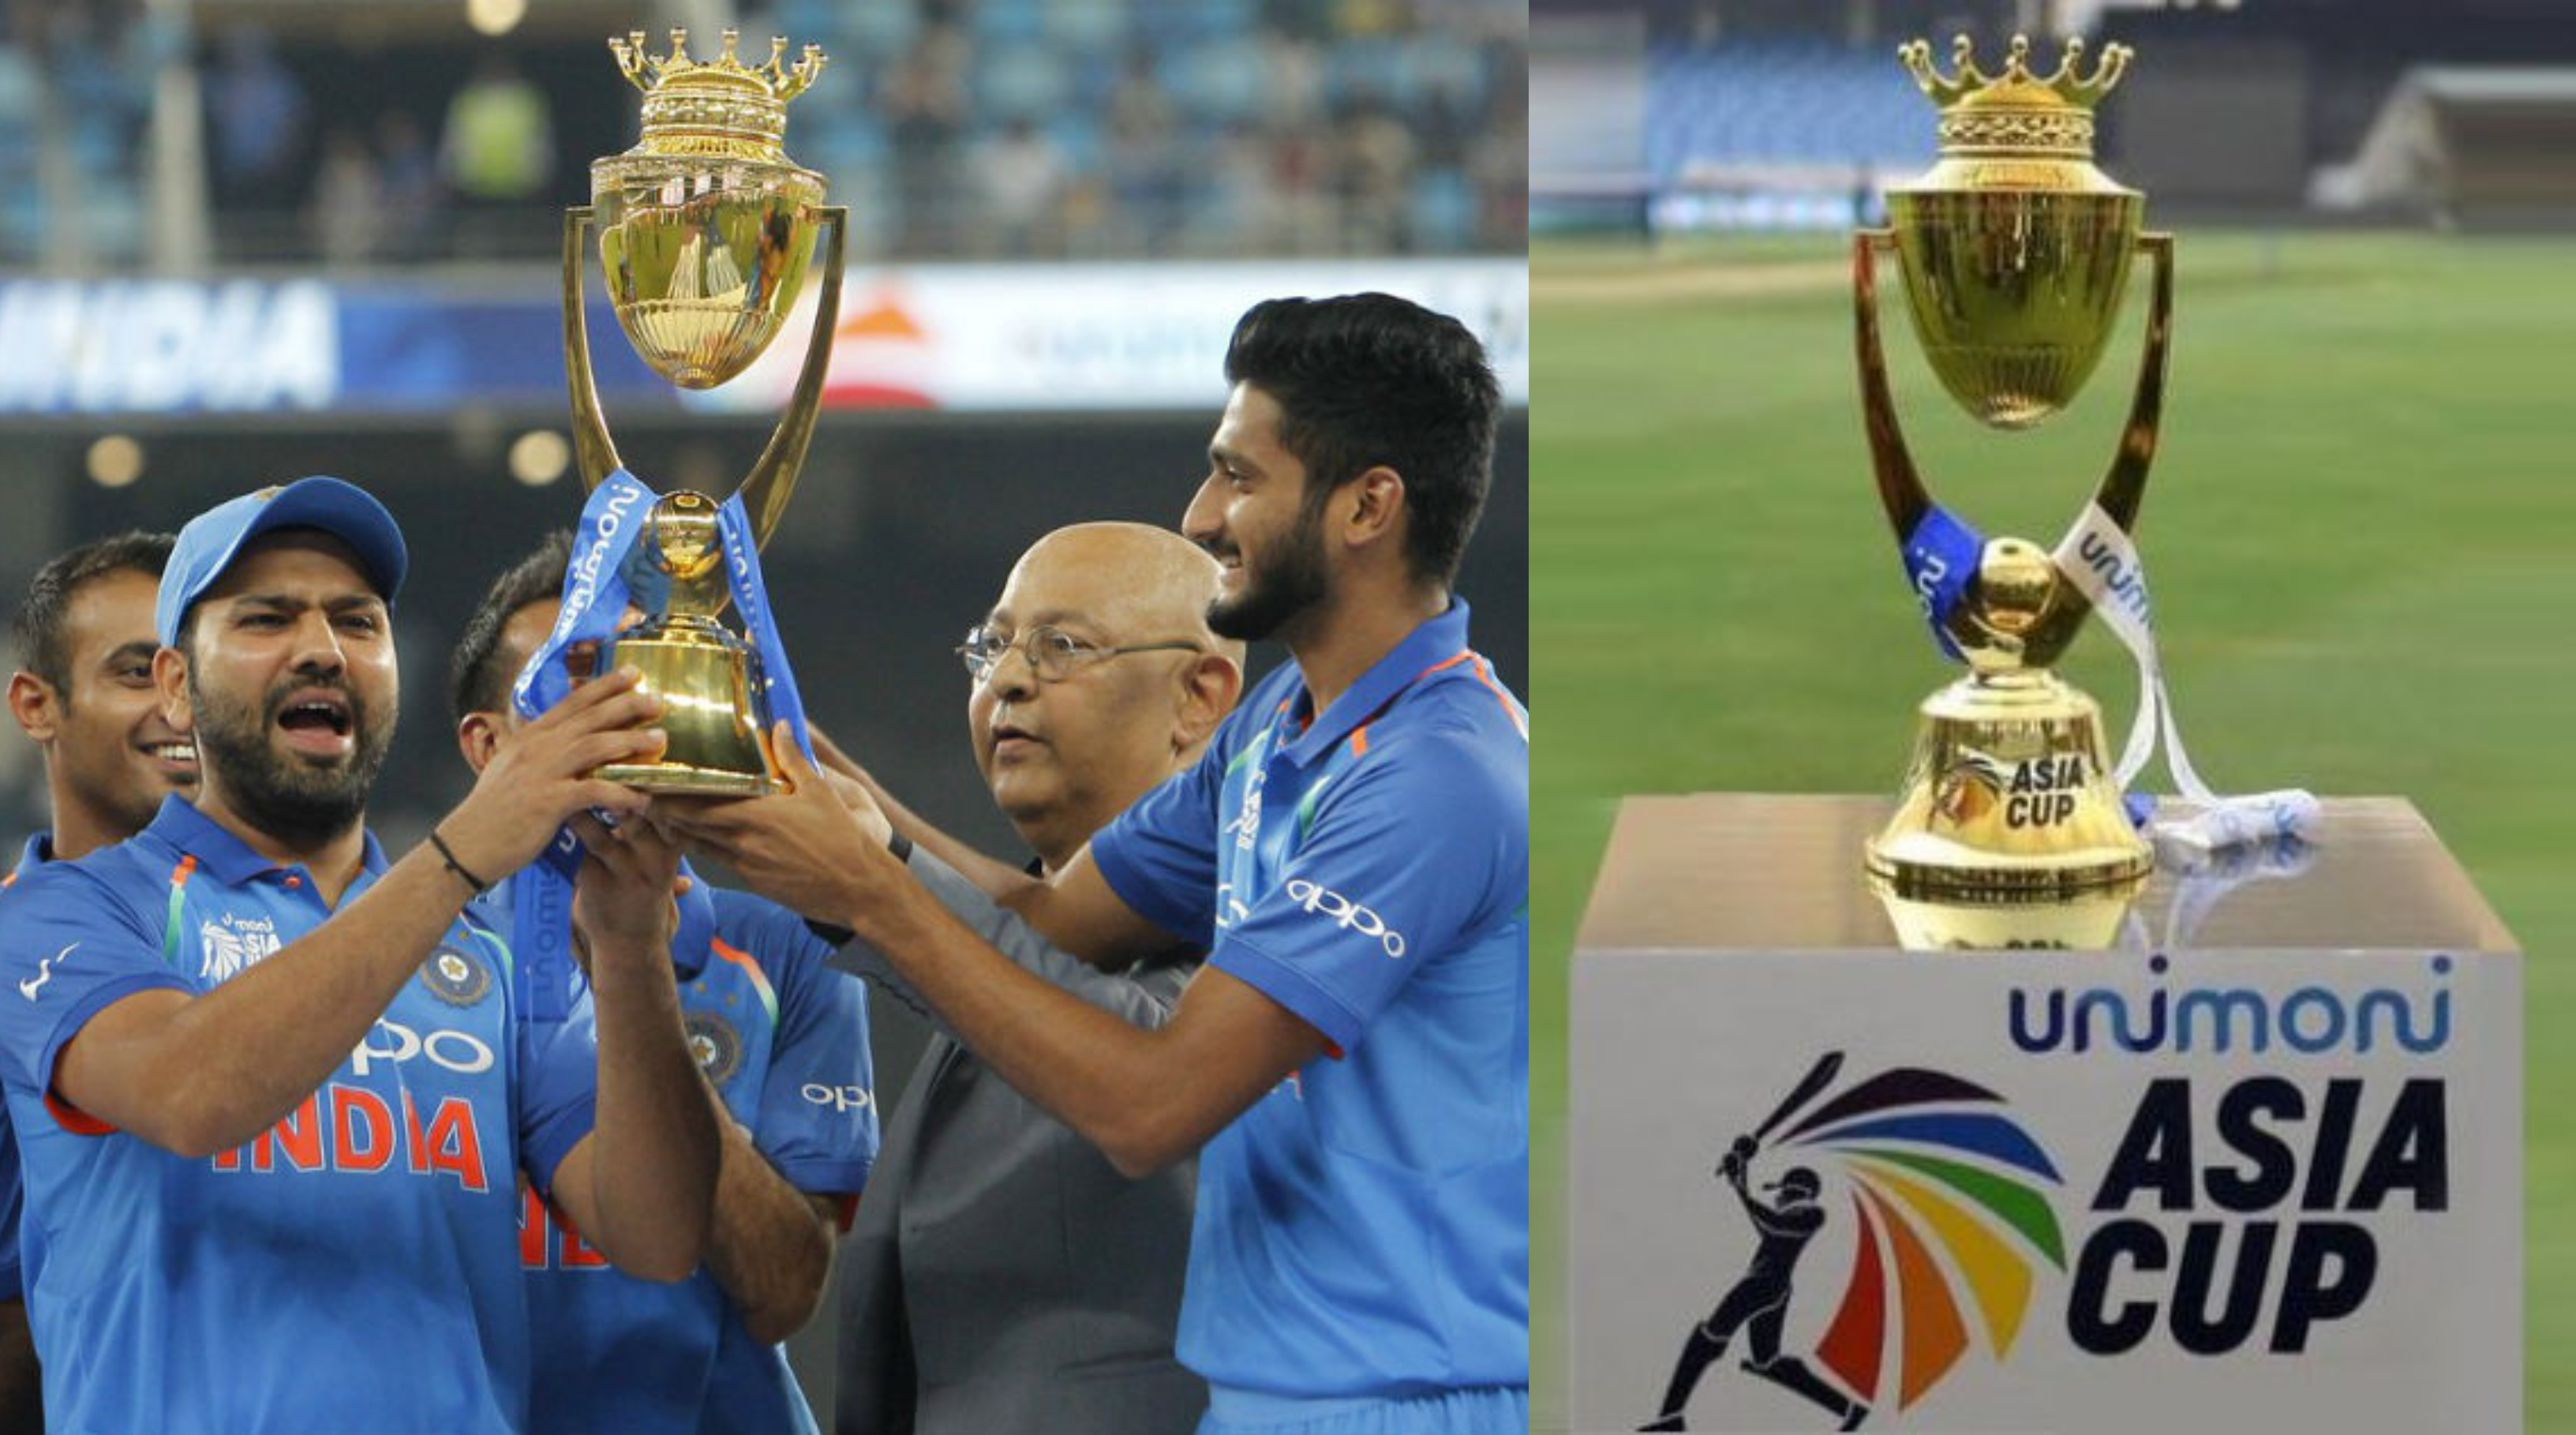 The defending champions India has a great record in the Asia Cup, winning 7 titles so far | Getty Images